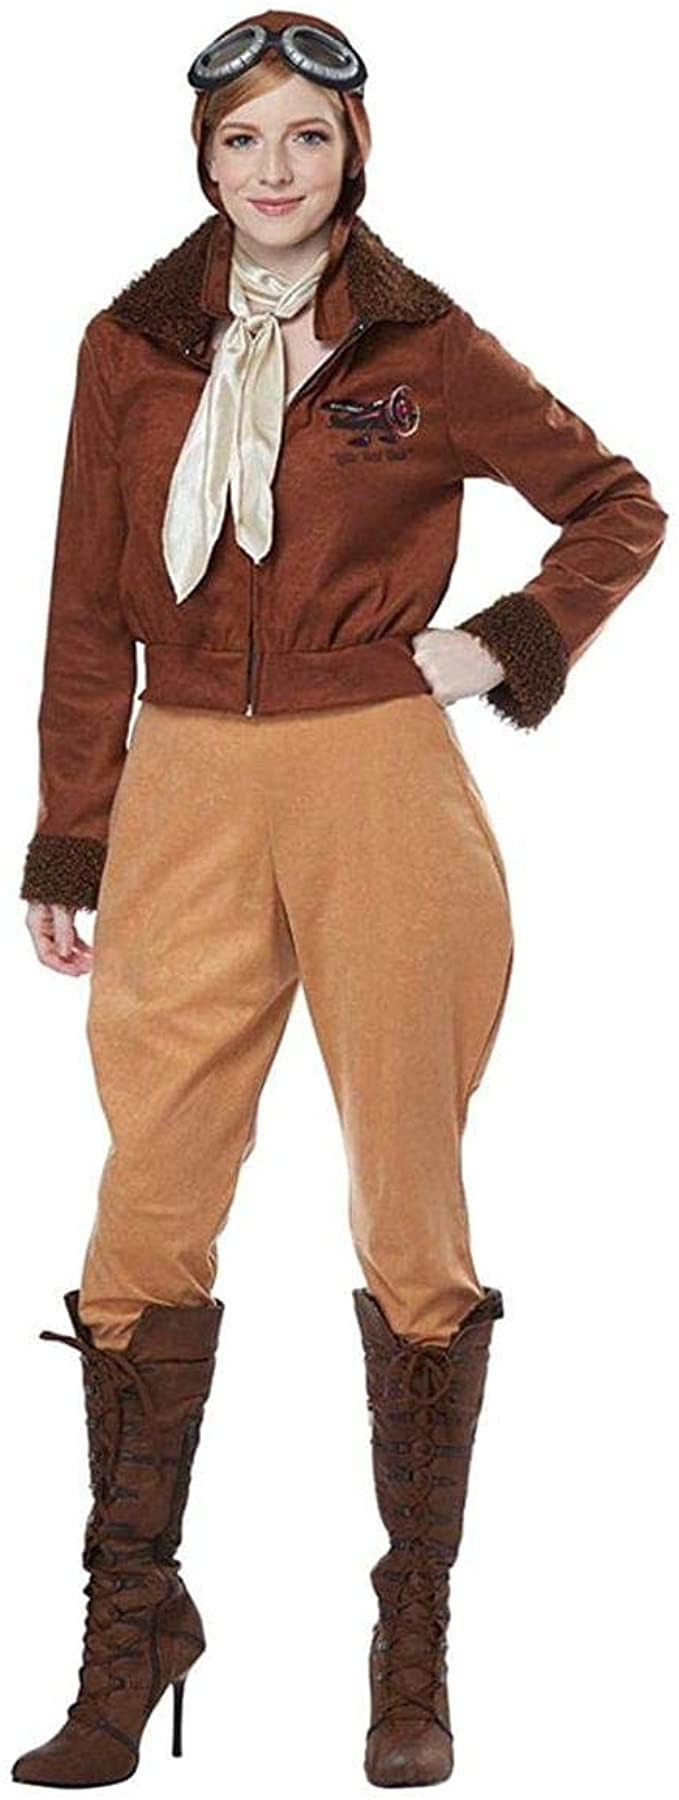 1930s Costumes- Bride of Frankenstein, Betty Boop, Olive Oyl, Bonnie & Clyde Womens Aviator Amelia Earhart Pilot Costume Brown $44.99 AT vintagedancer.com